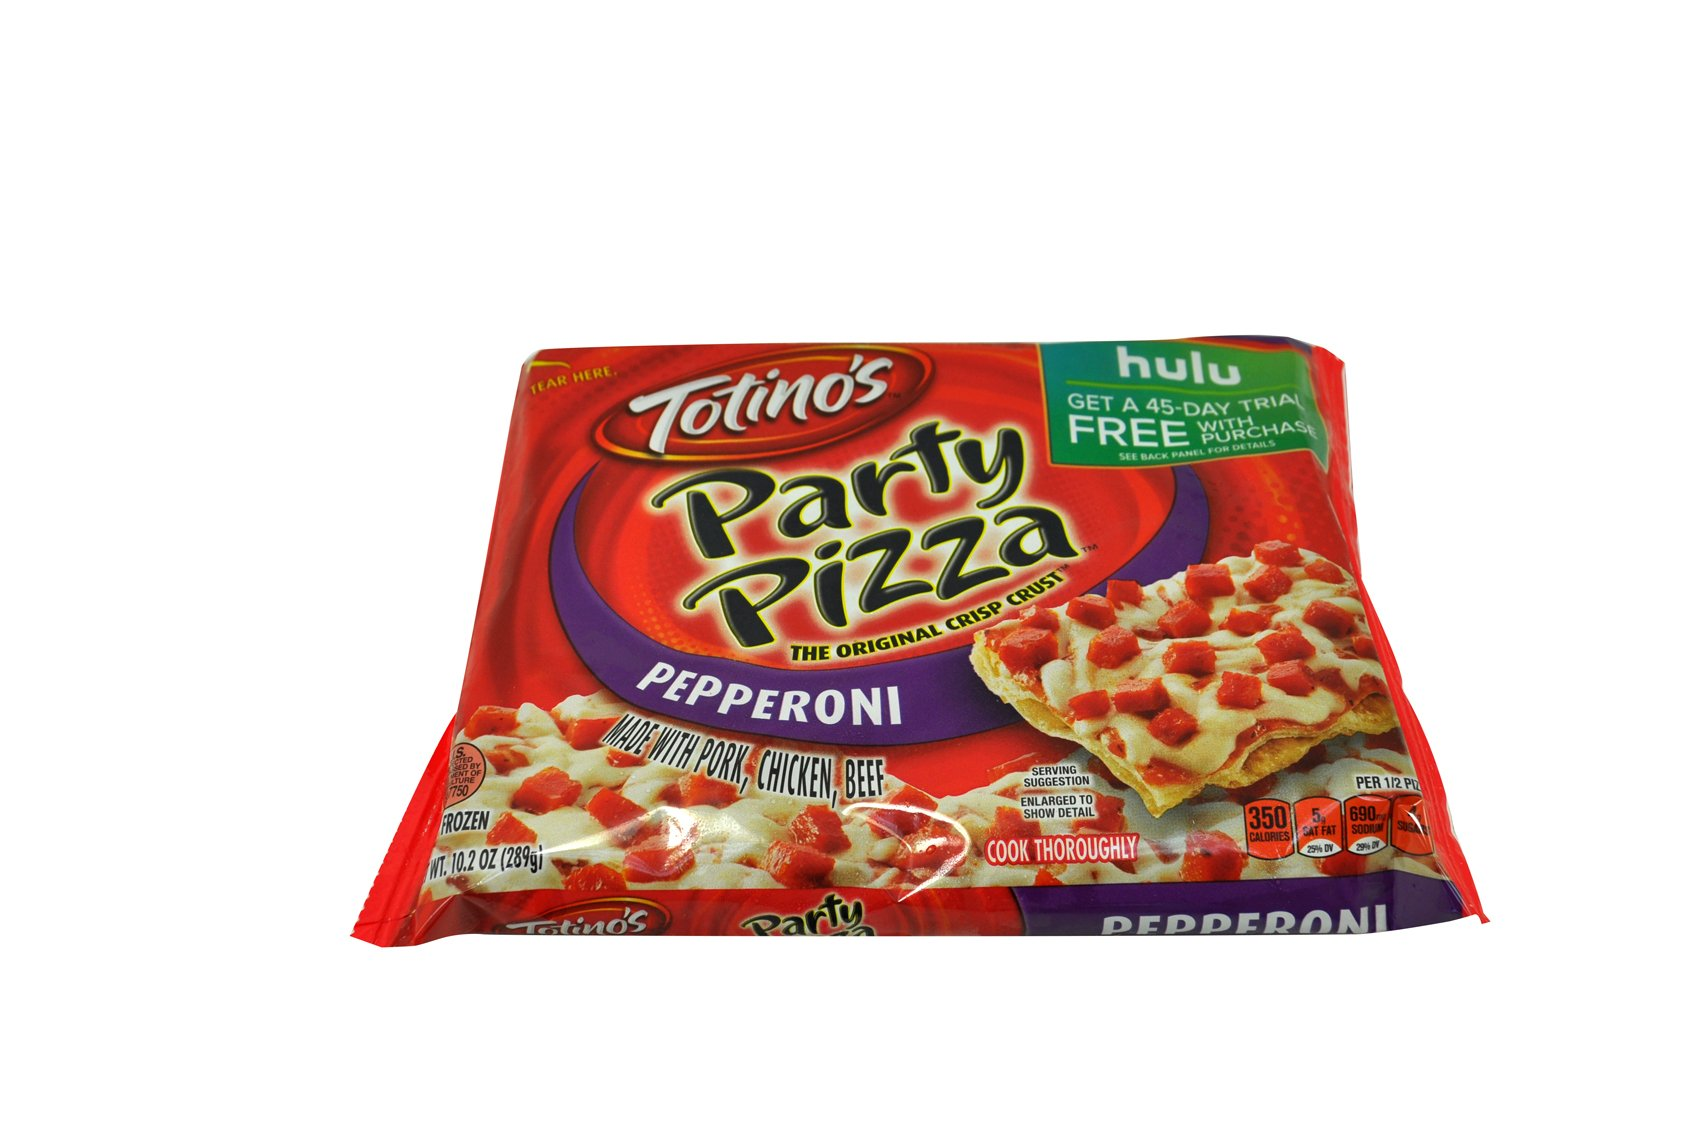 Totino's Party Pizza, Pepperoni, 10.2 oz., (14 count)